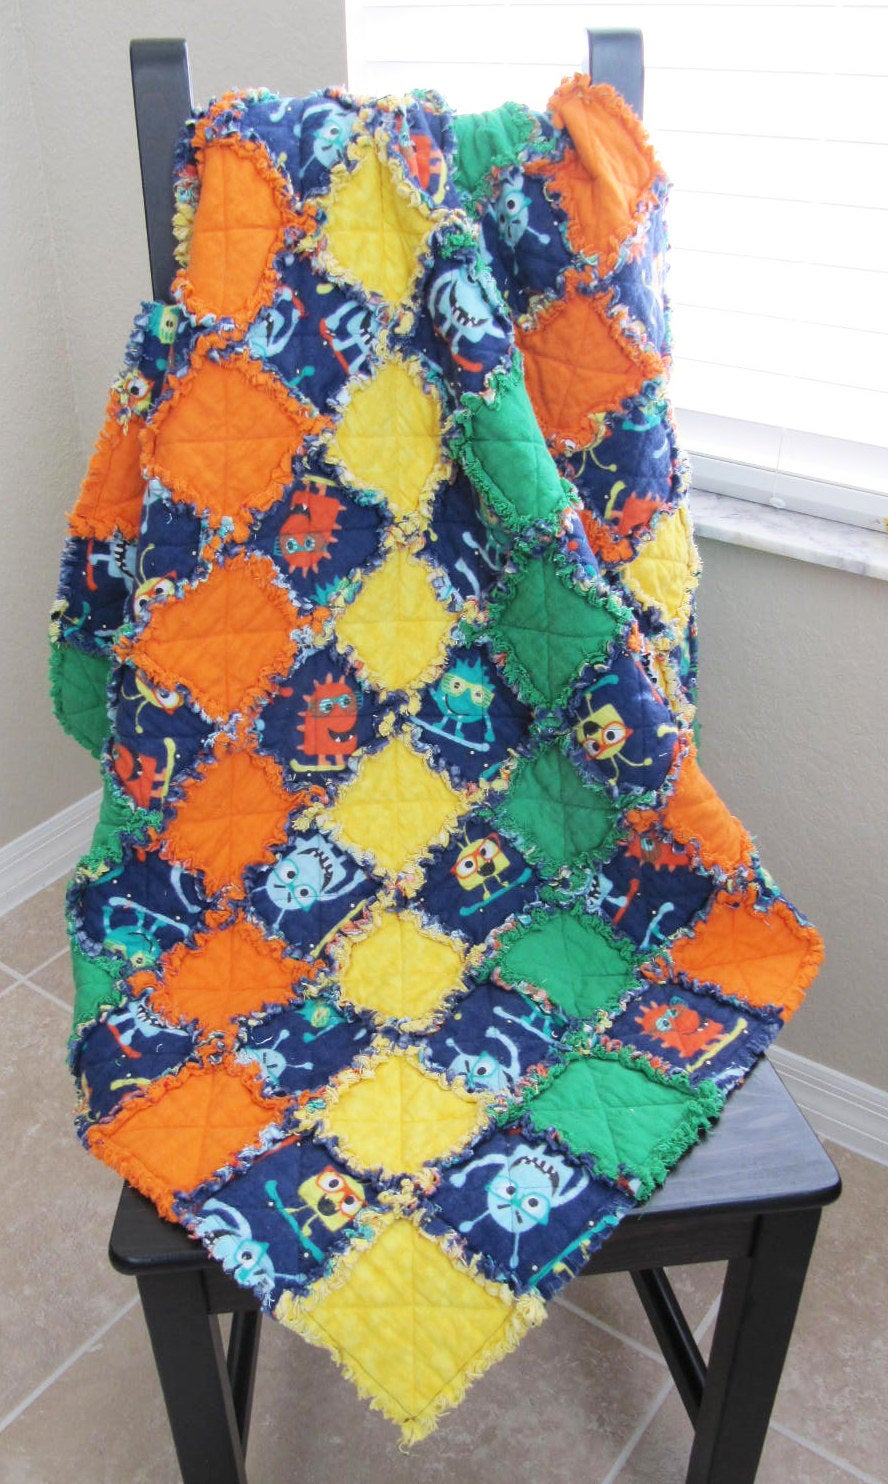 Navy Monster Blanket for Baby/Toddler - baby shower gift, cuddle blanket, aliens, green orange yellow